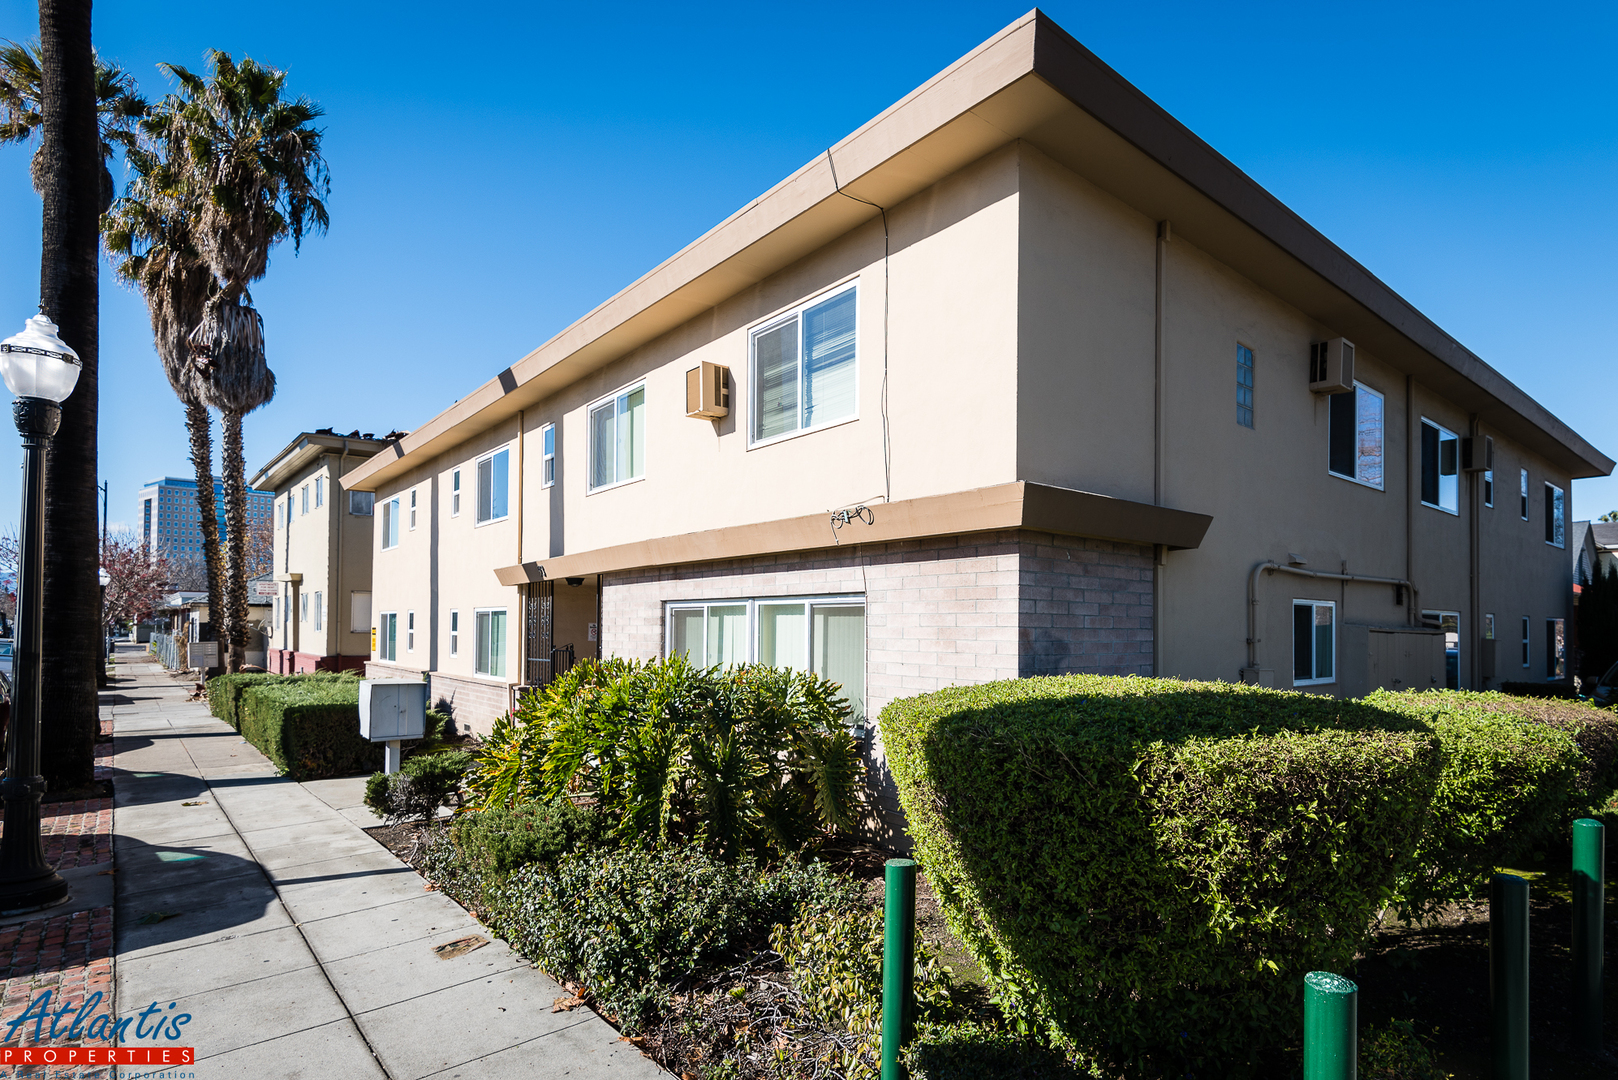 Apartments and Houses for Rent Near Me in Downtown, San Jose